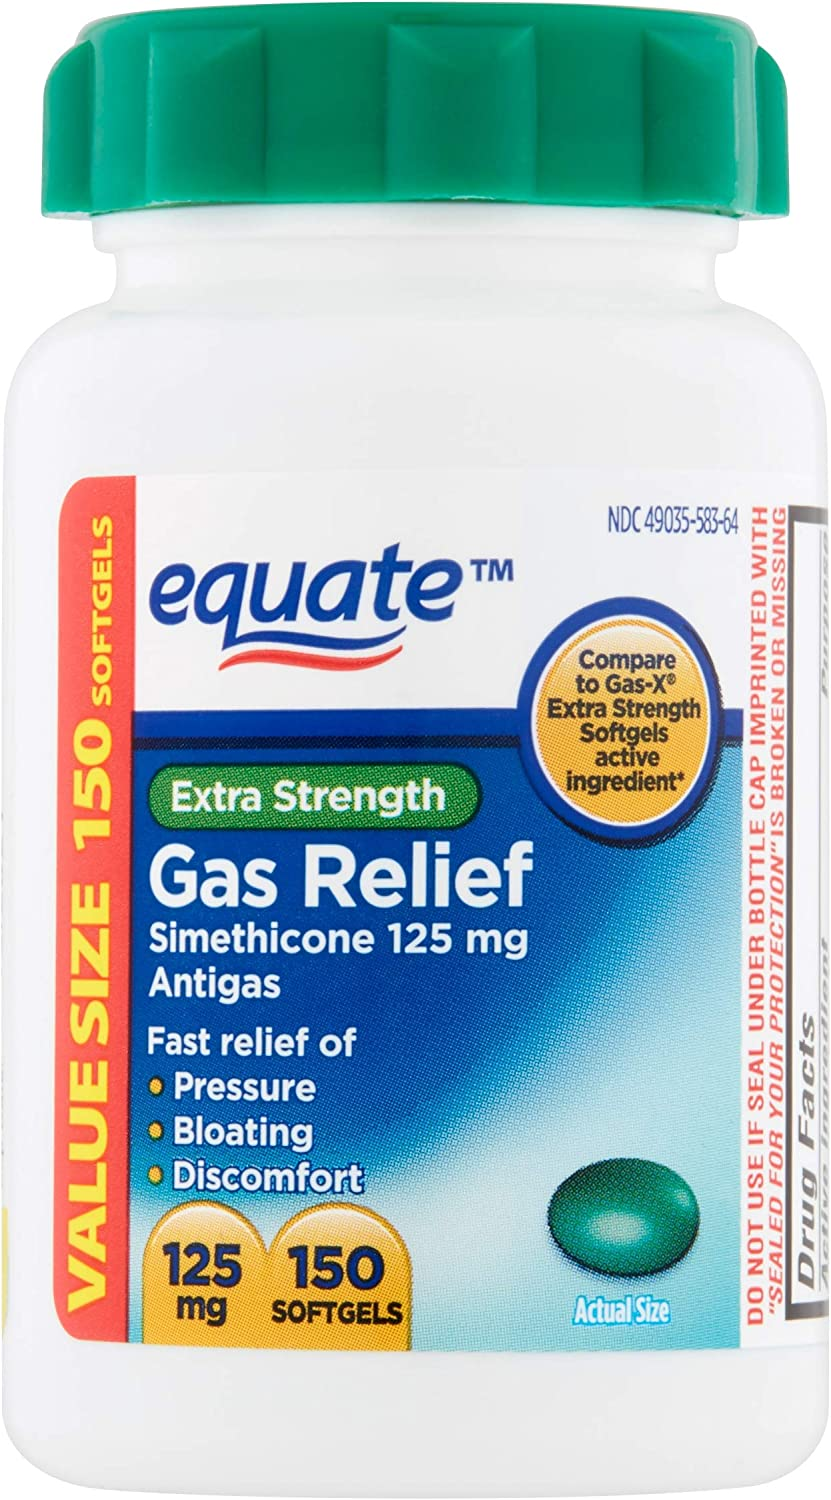 Equate Gas Relief 125mg - 150 Softgels Value Size: Health & Personal Care